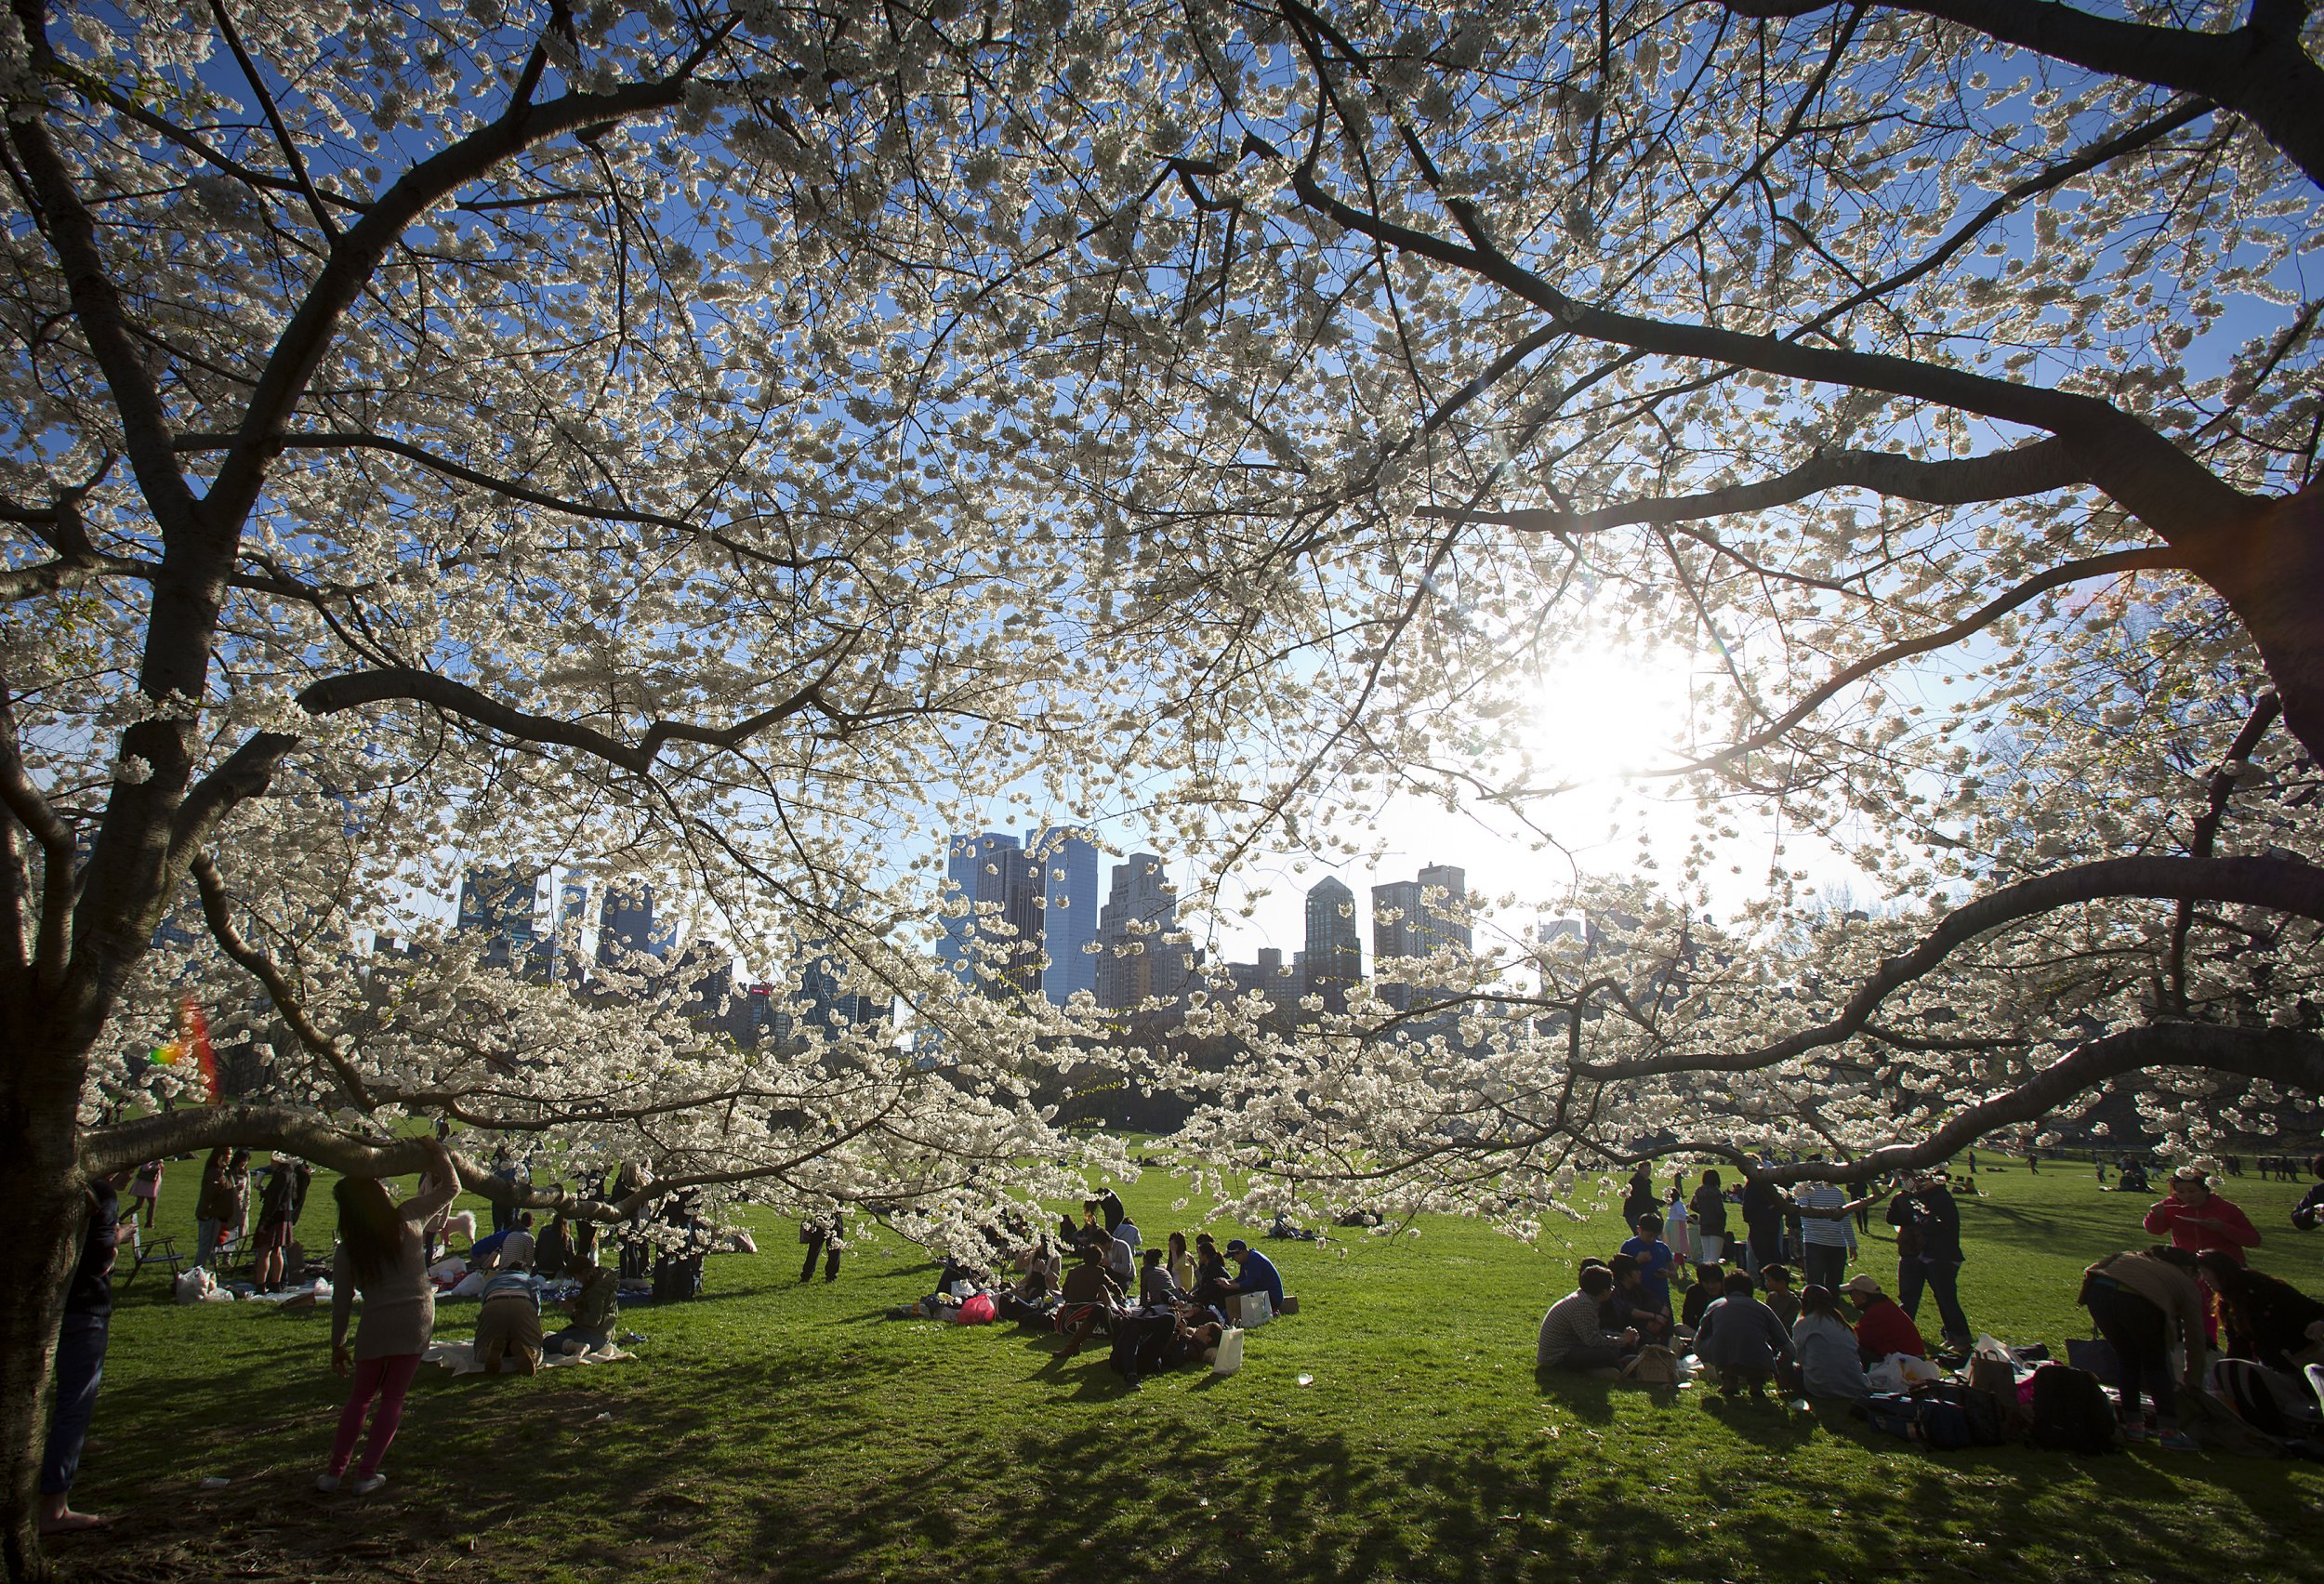 Climate Change to Make Spring Come Early, Science Says